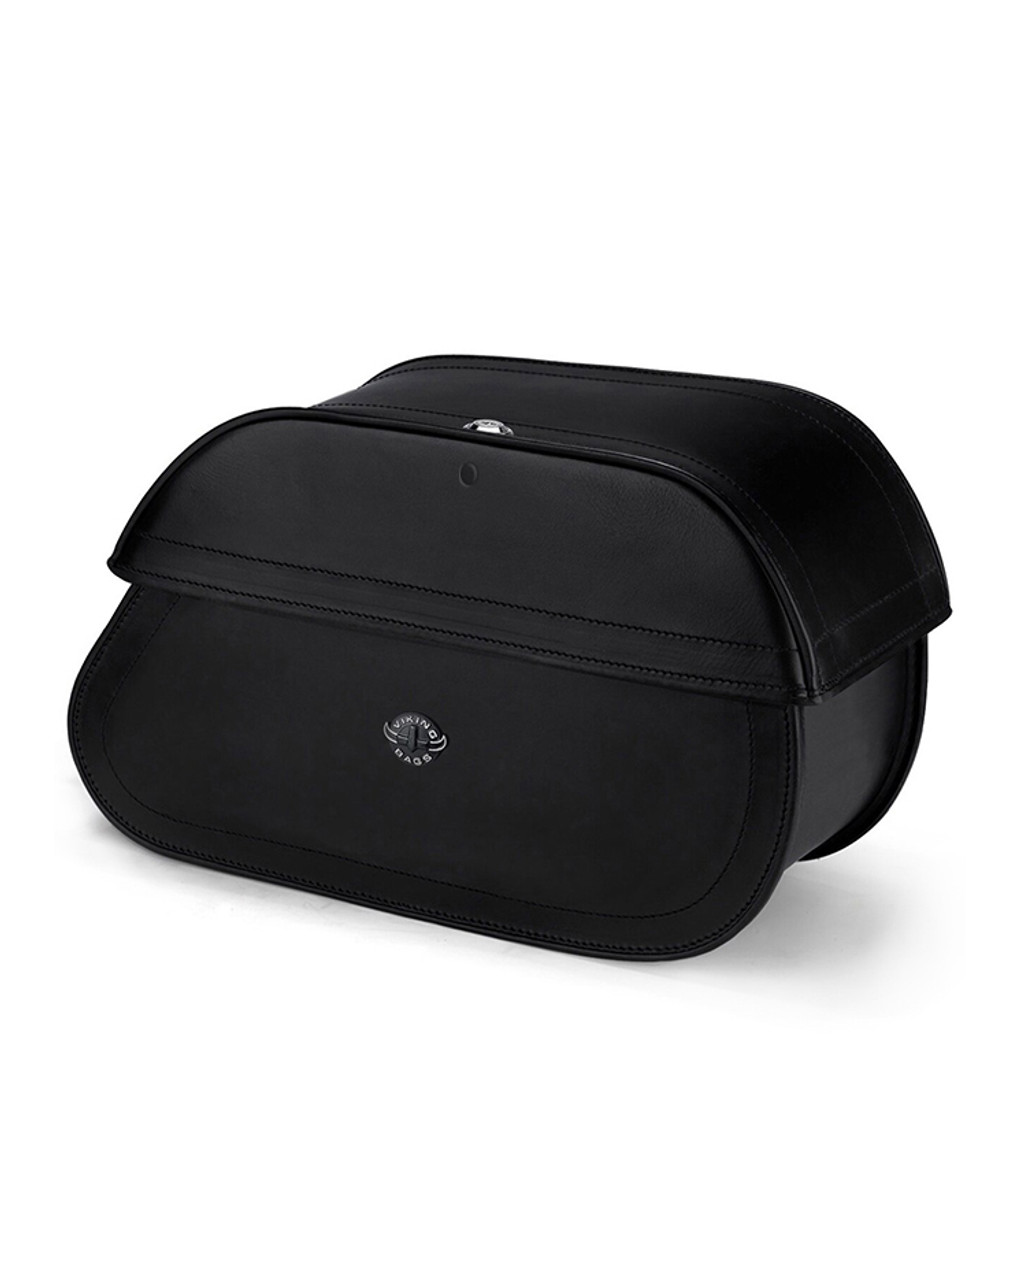 Honda 1500 Valkyrie Interstate Hammer Series Extra Large Motorcycle Saddlebags Main View